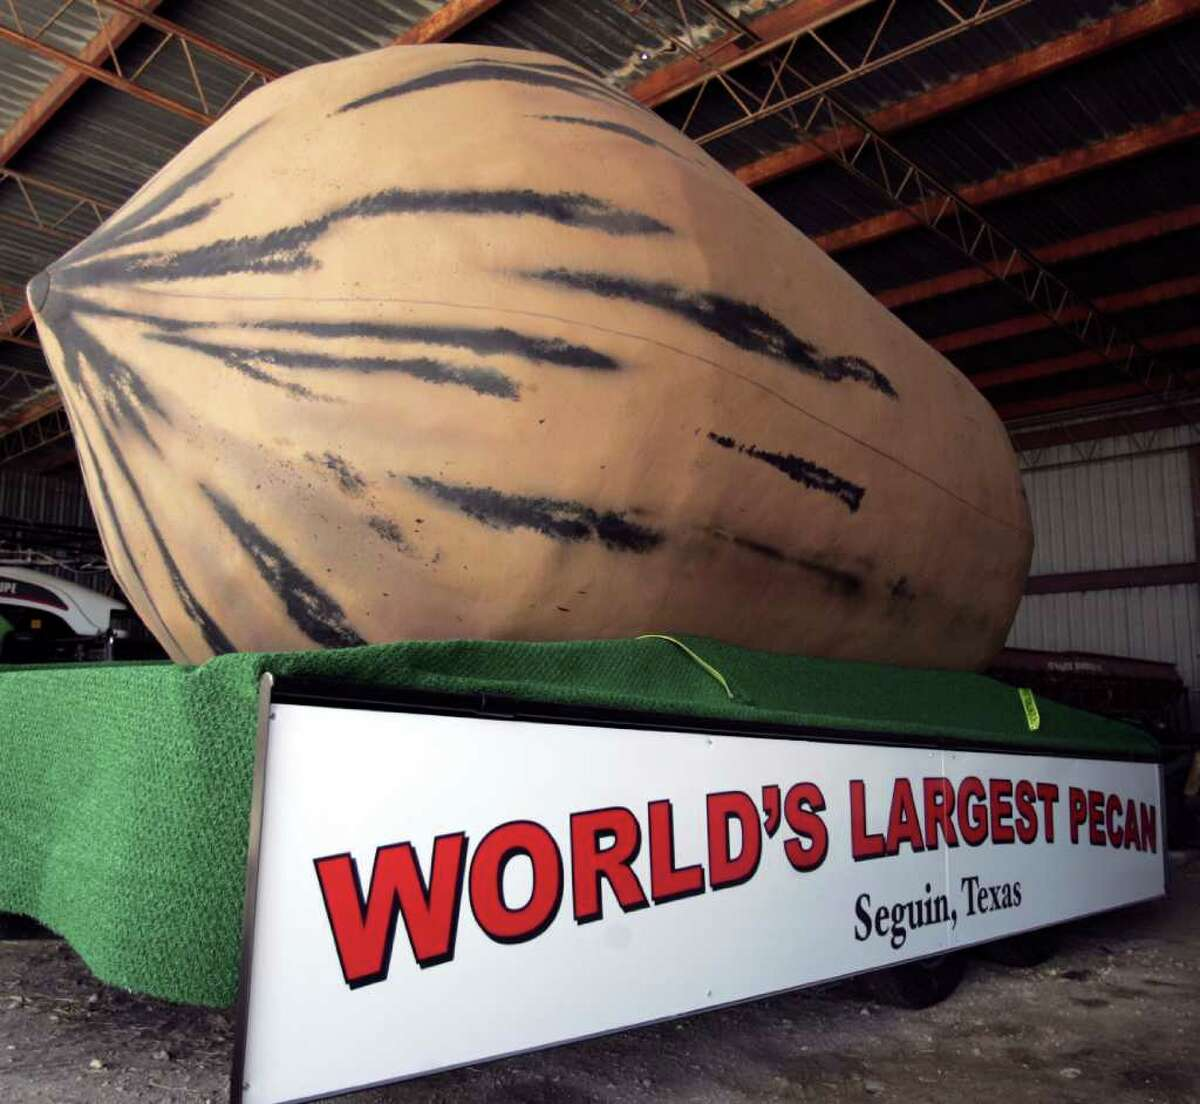 The world's largest pecan will roll into the public spotlight during Monday's July 4 parade in Seguin. And no, the nut is not real. OMAR PEREZ/operez@express-news.net